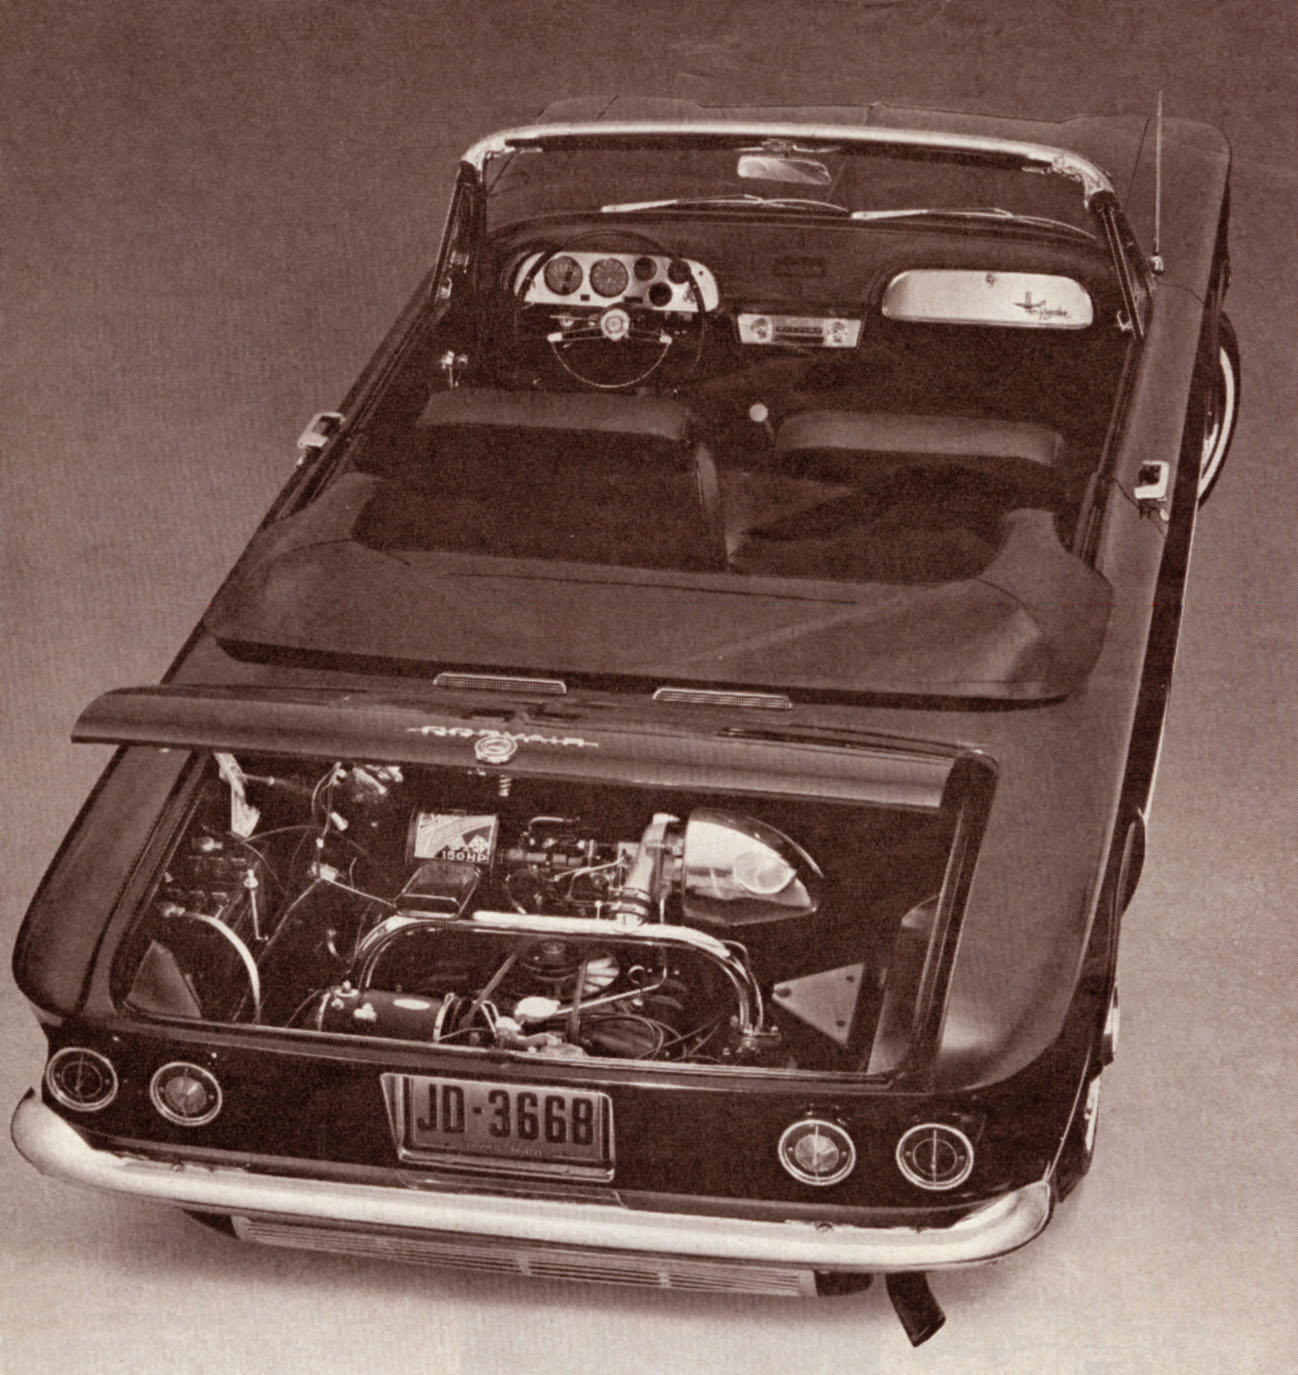 Corvair And Falcon Man Phscollectorcarworld 1960 Studebaker Lark Wiring Diagram Secretly Fantasized Of Being A Cad Counter Jumper The Spyder Convertible Was His First Choice But He Chose Hardtop To Avoid Annoying